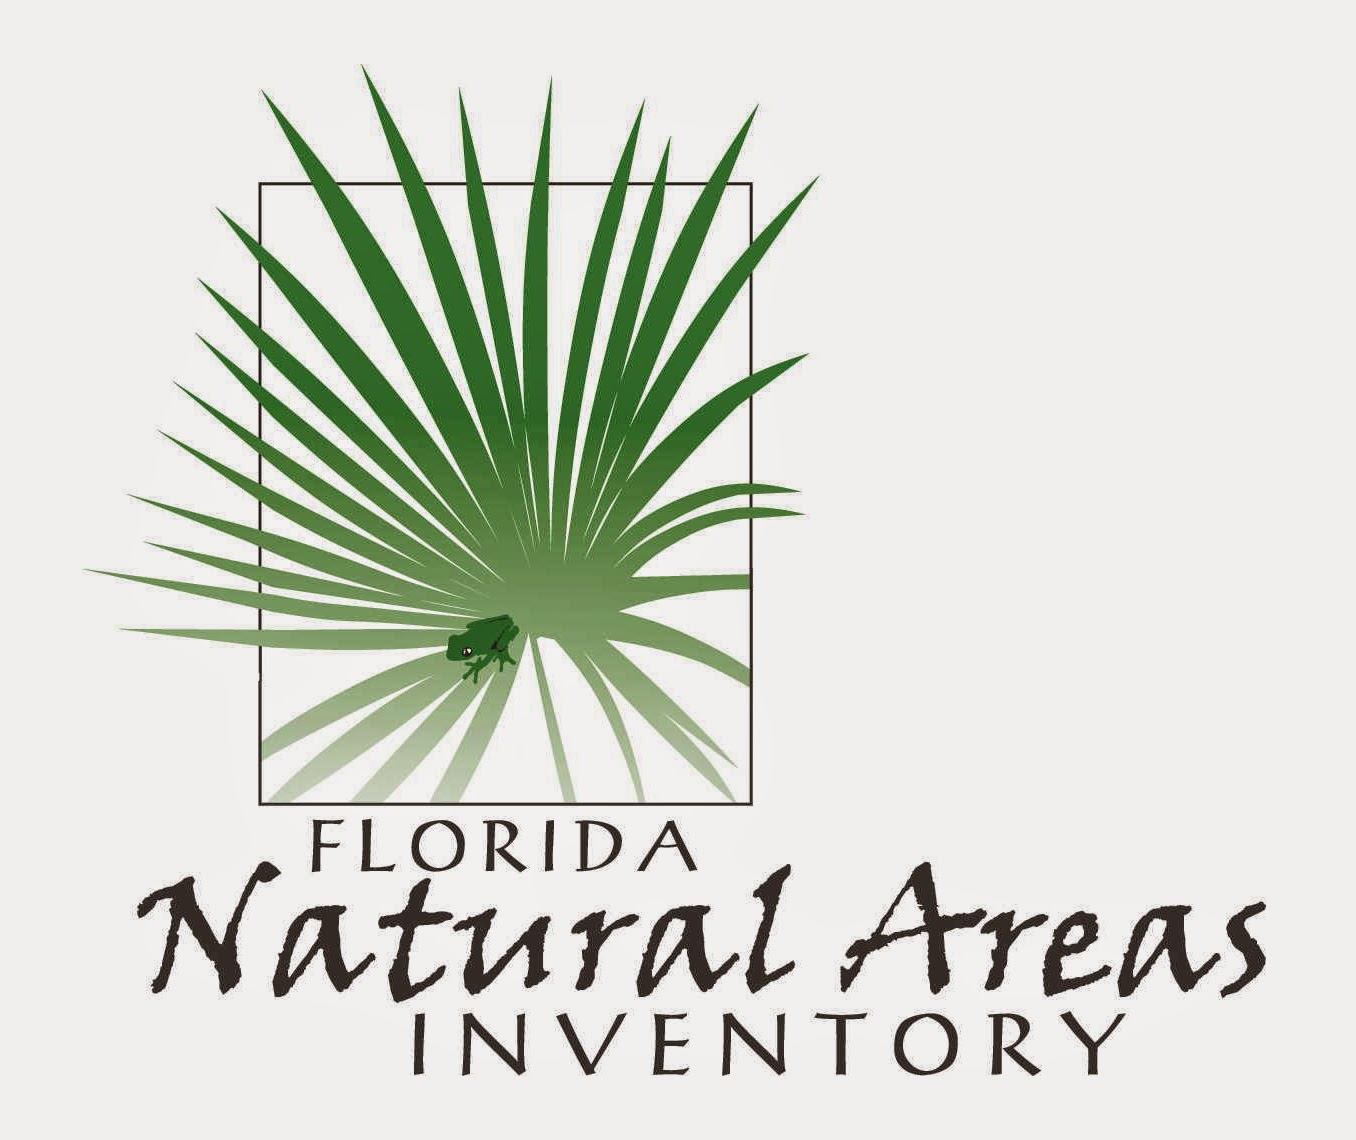 Florida Natural Areas Inventory